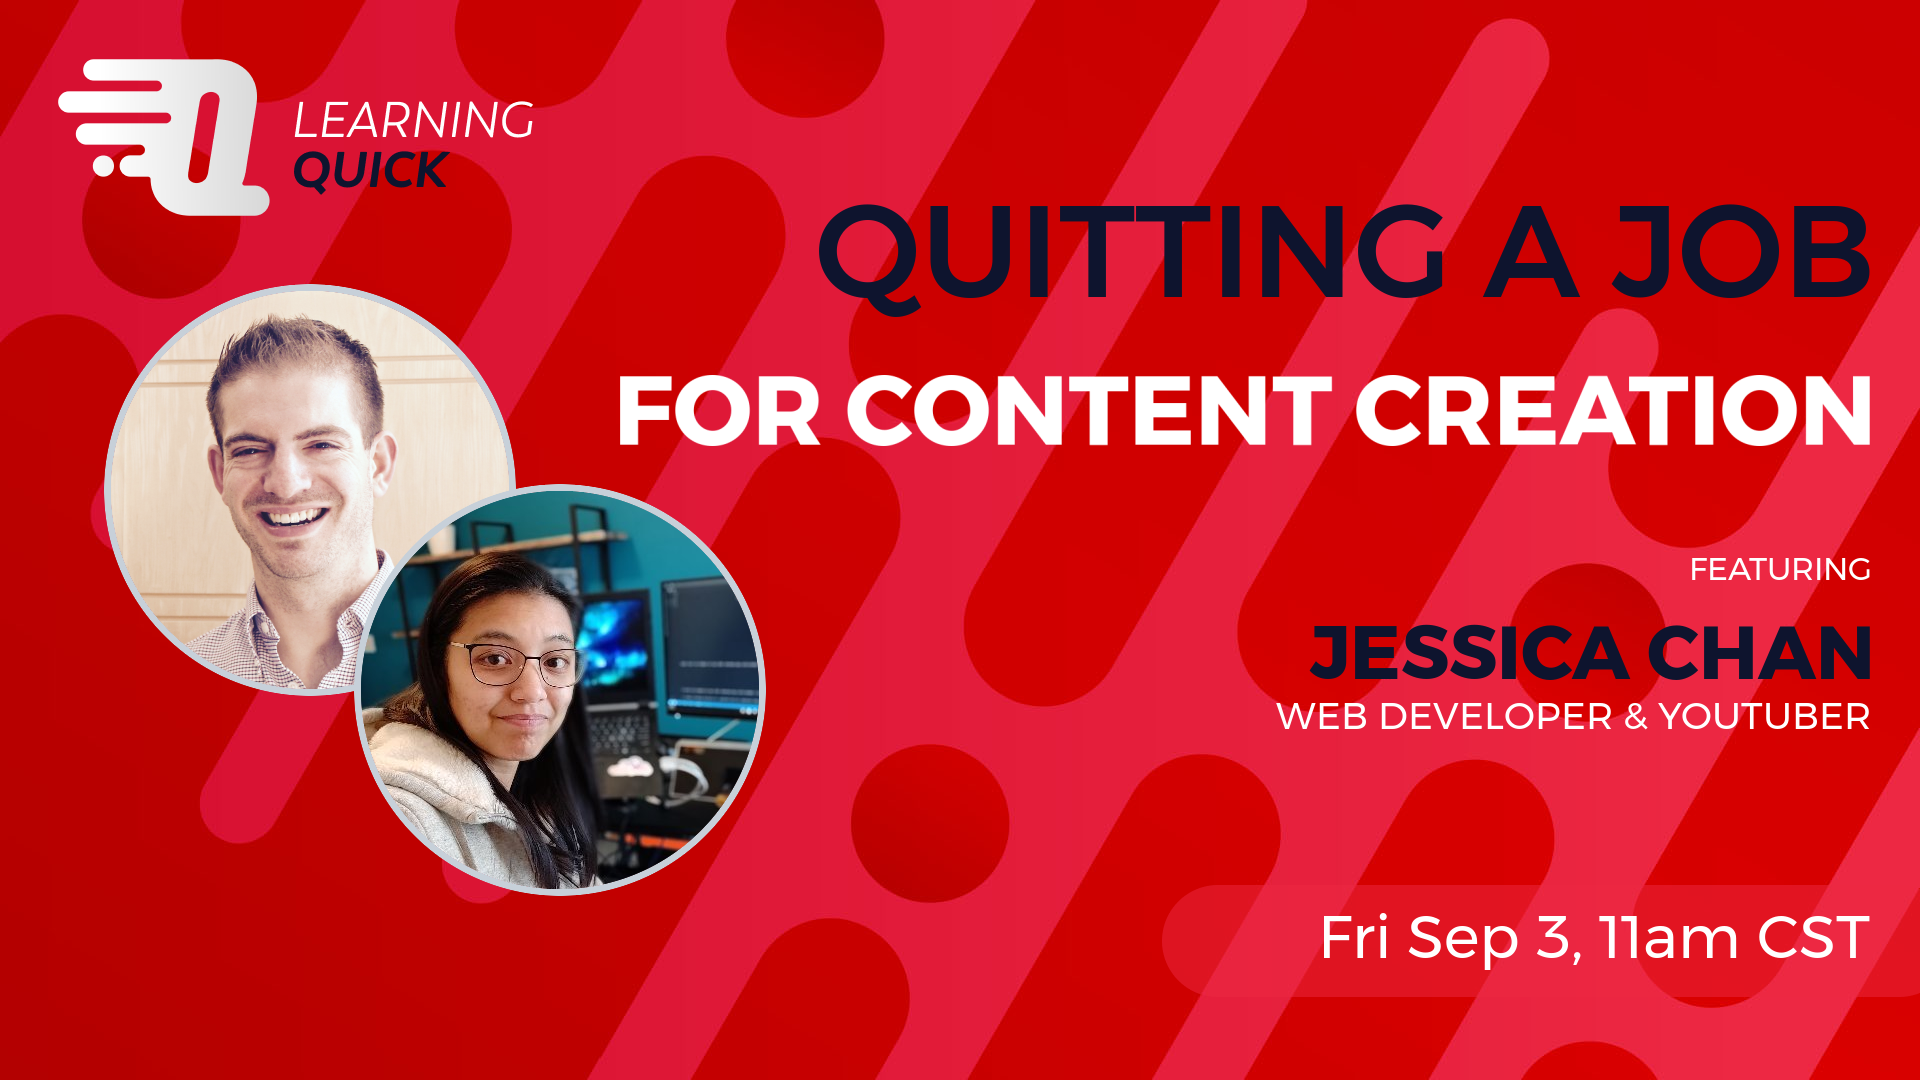 Quitting a Job For Content Creation with Jessica Chan